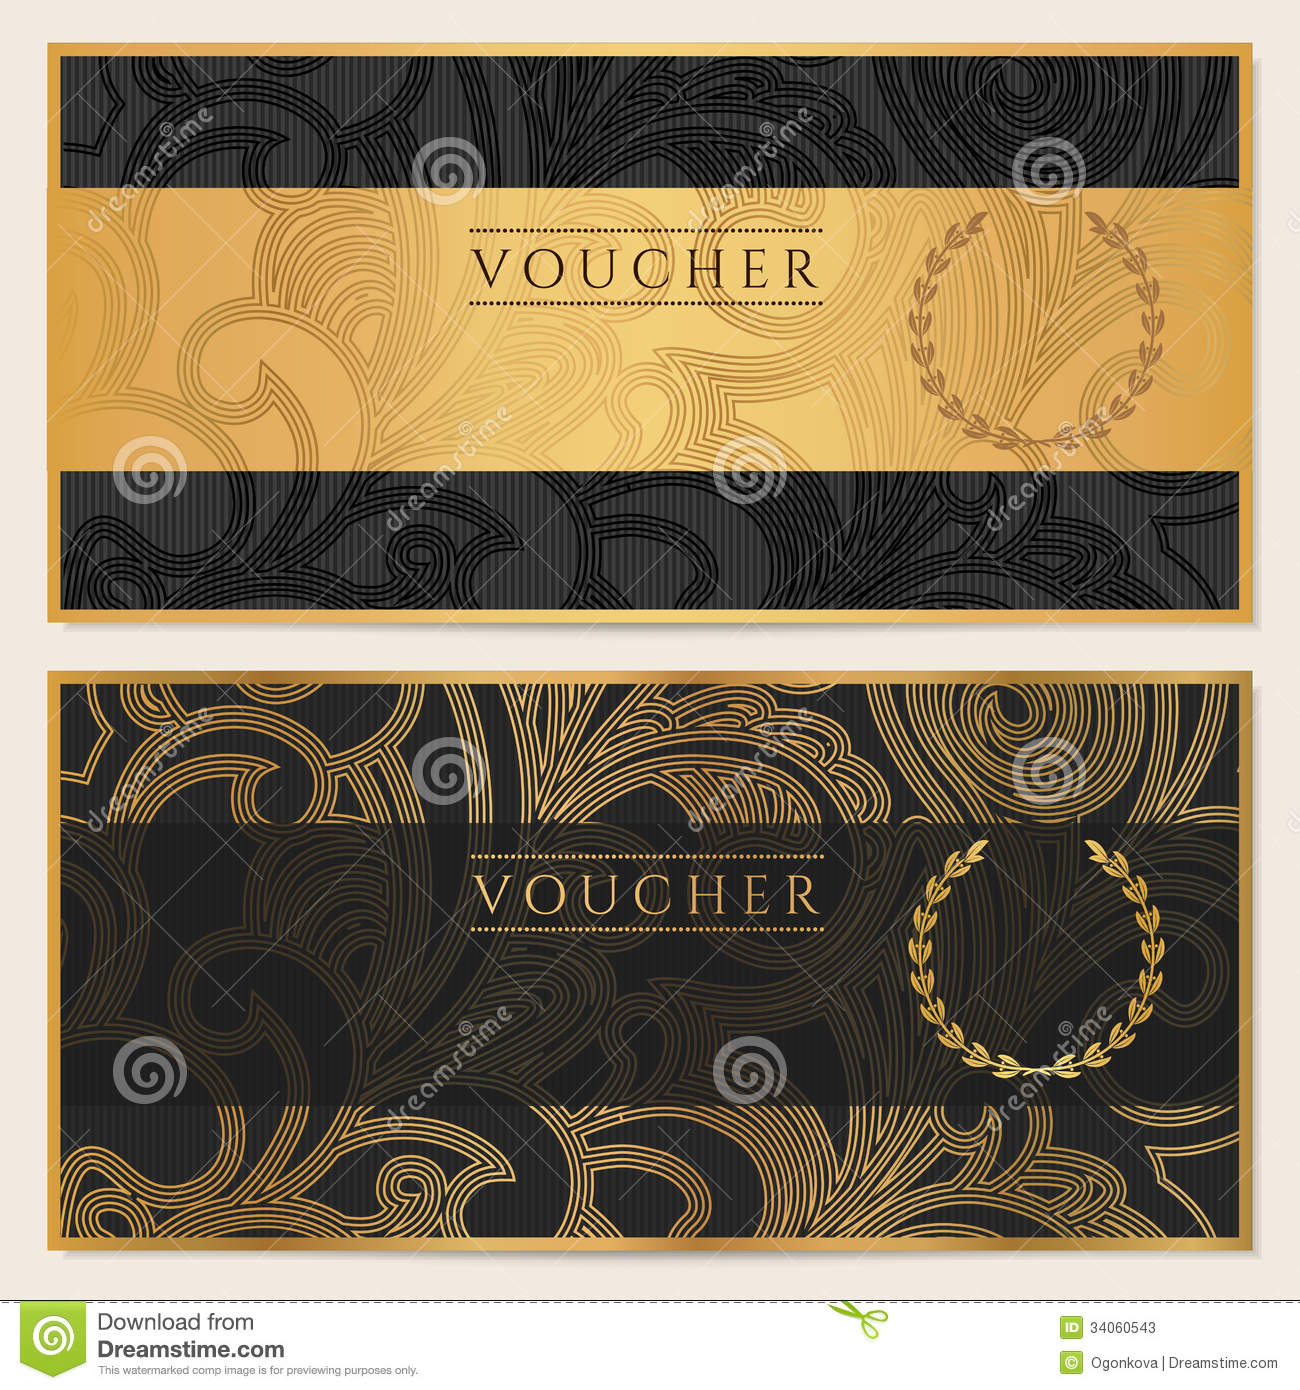 voucher  gift certificate  coupon  ticket  pattern stock